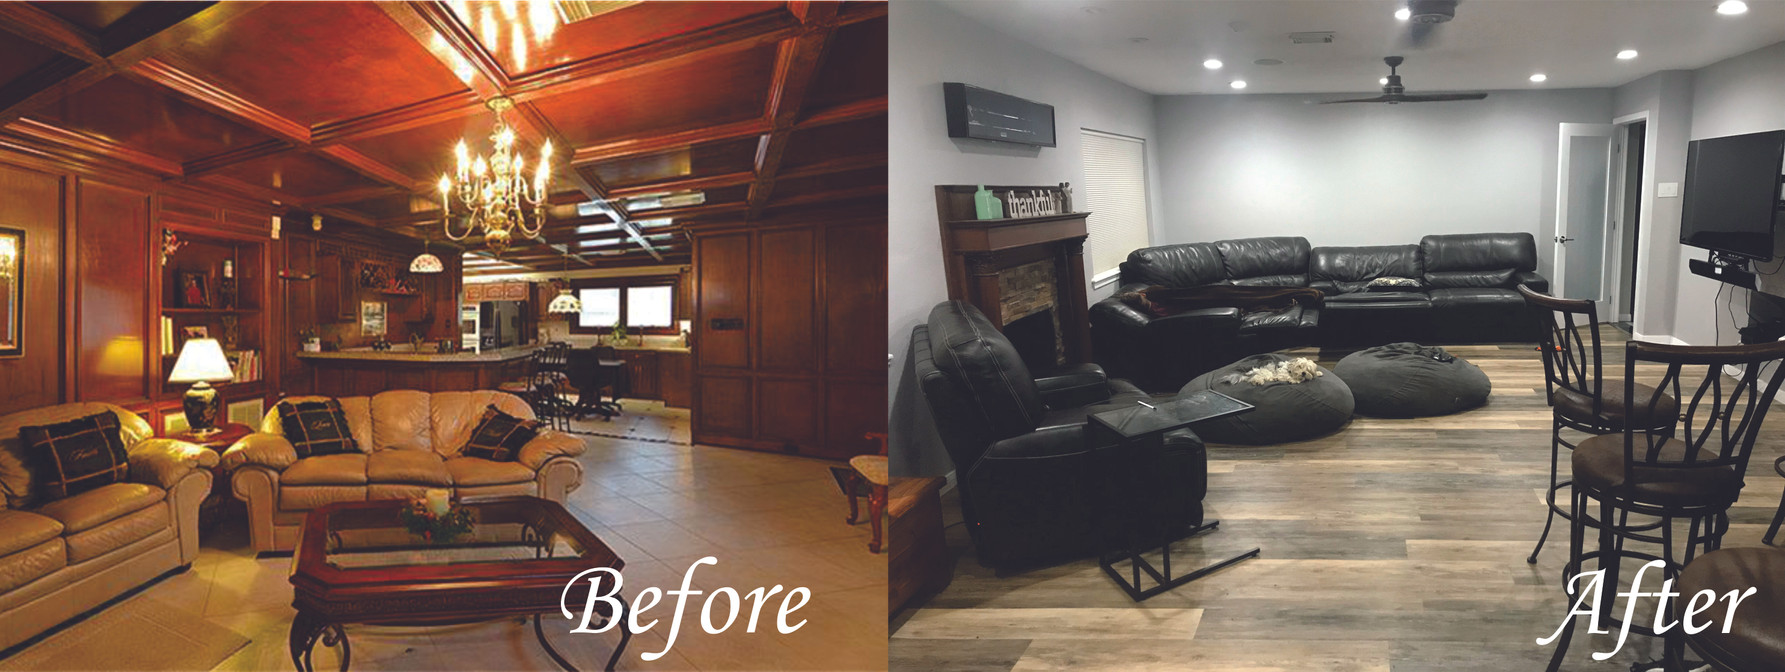 Living Room 1 - Before and After